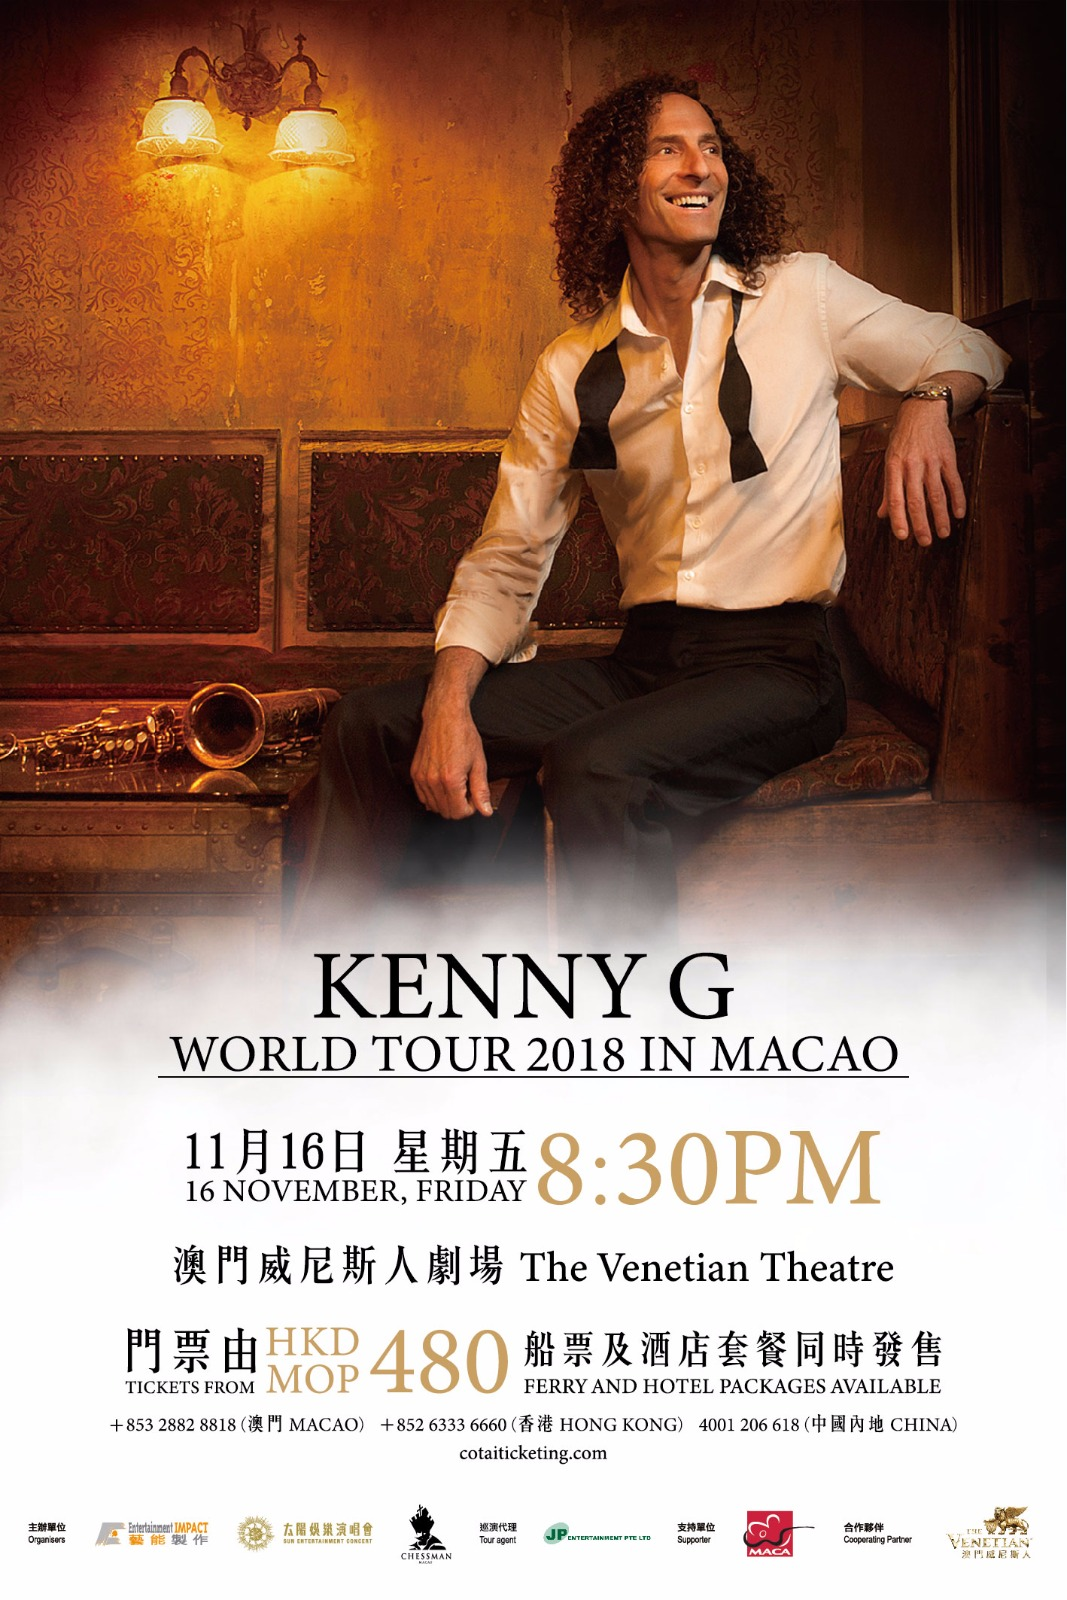 《KENNY G WORLD TOUR 2018 IN MACAO》 -The Venetianmacao